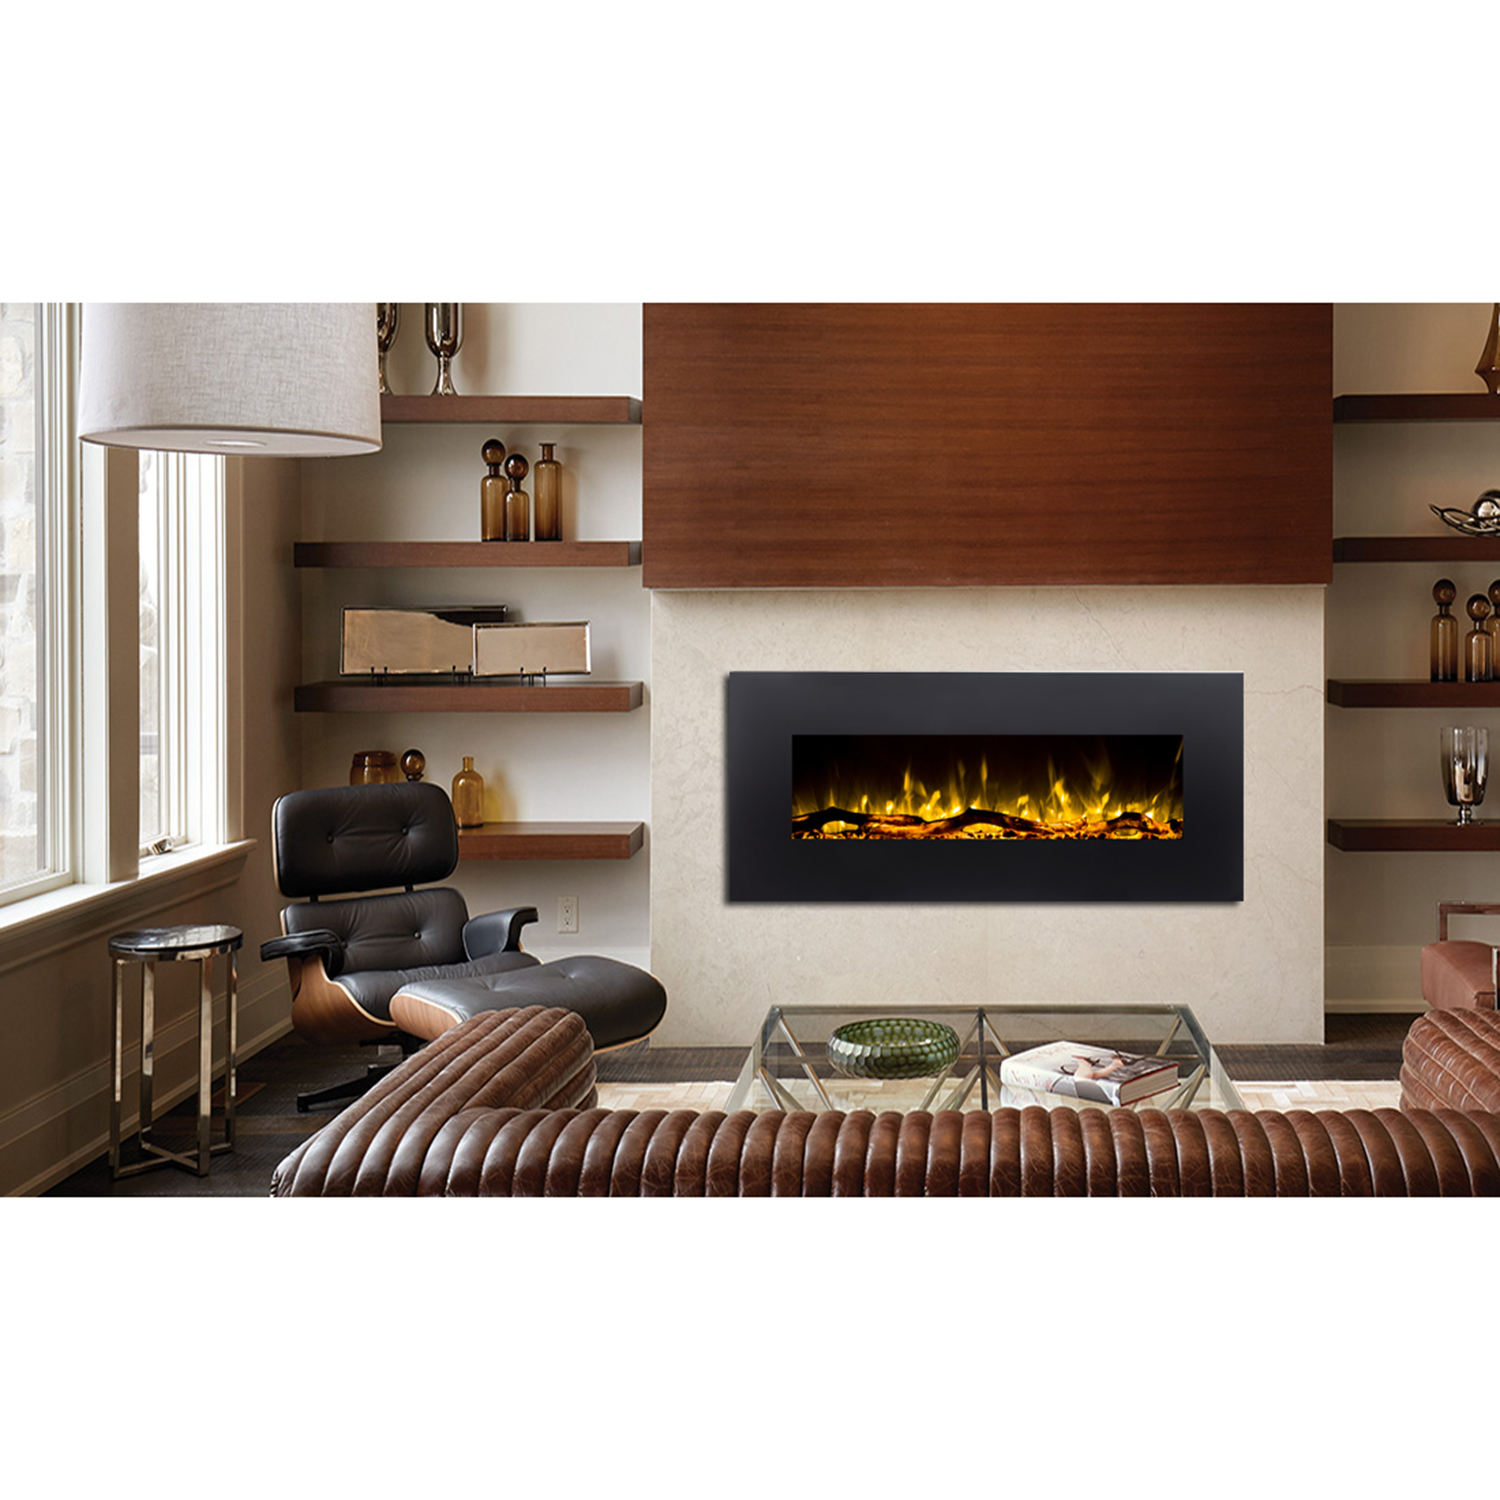 Ventless Wall Mount Gas Fireplace Ashford 50 Inch Black Ventless Heater Electric Wall